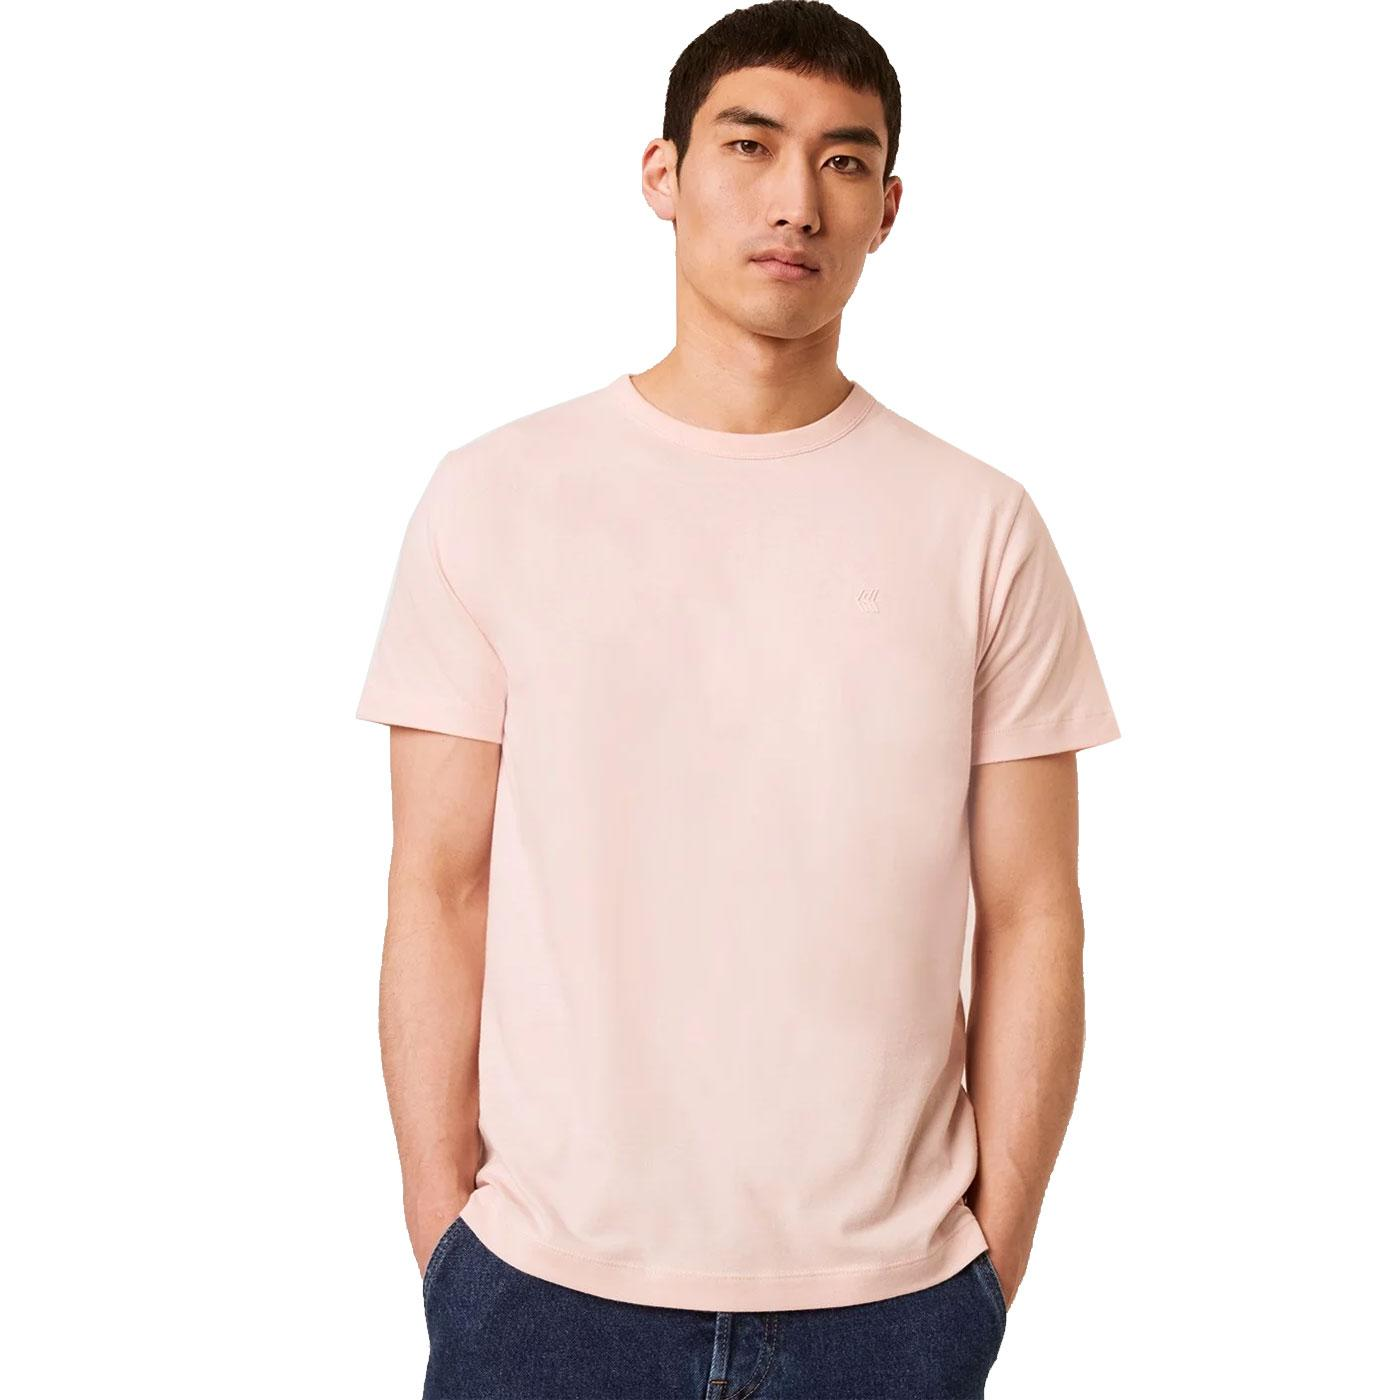 FRENCH CONNECTION Organic Cotton Crew Neck Tee P